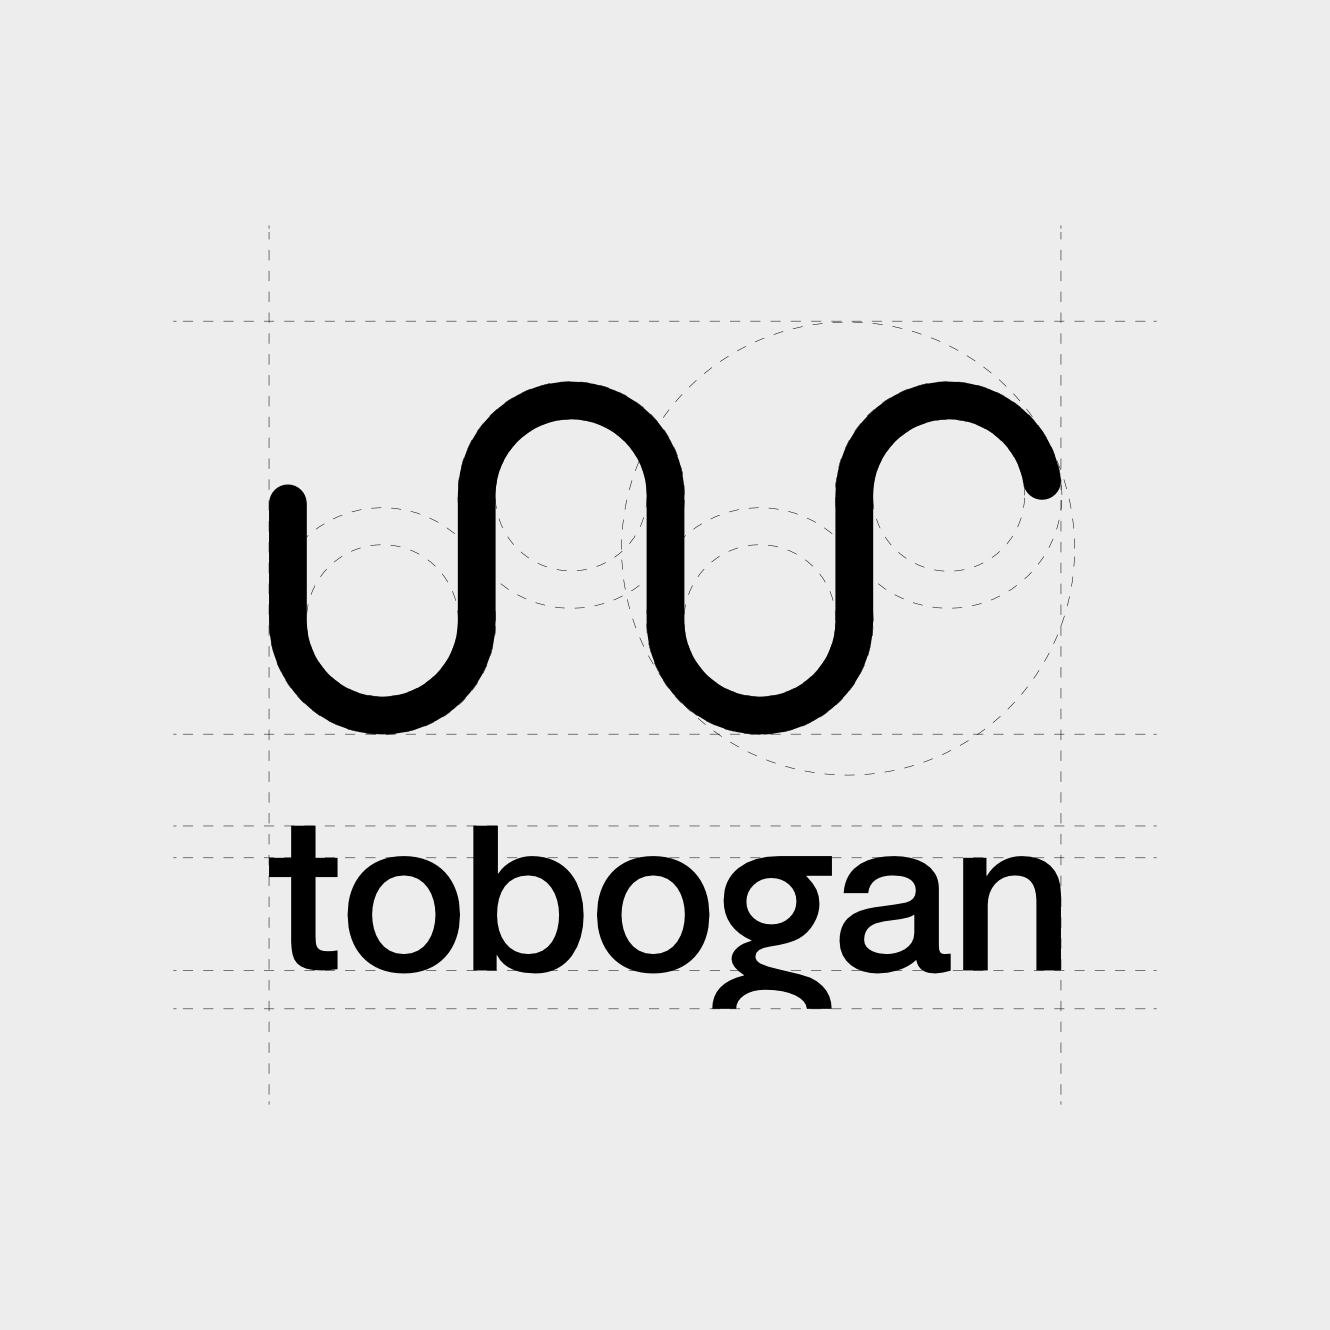 Logotip Tobogan